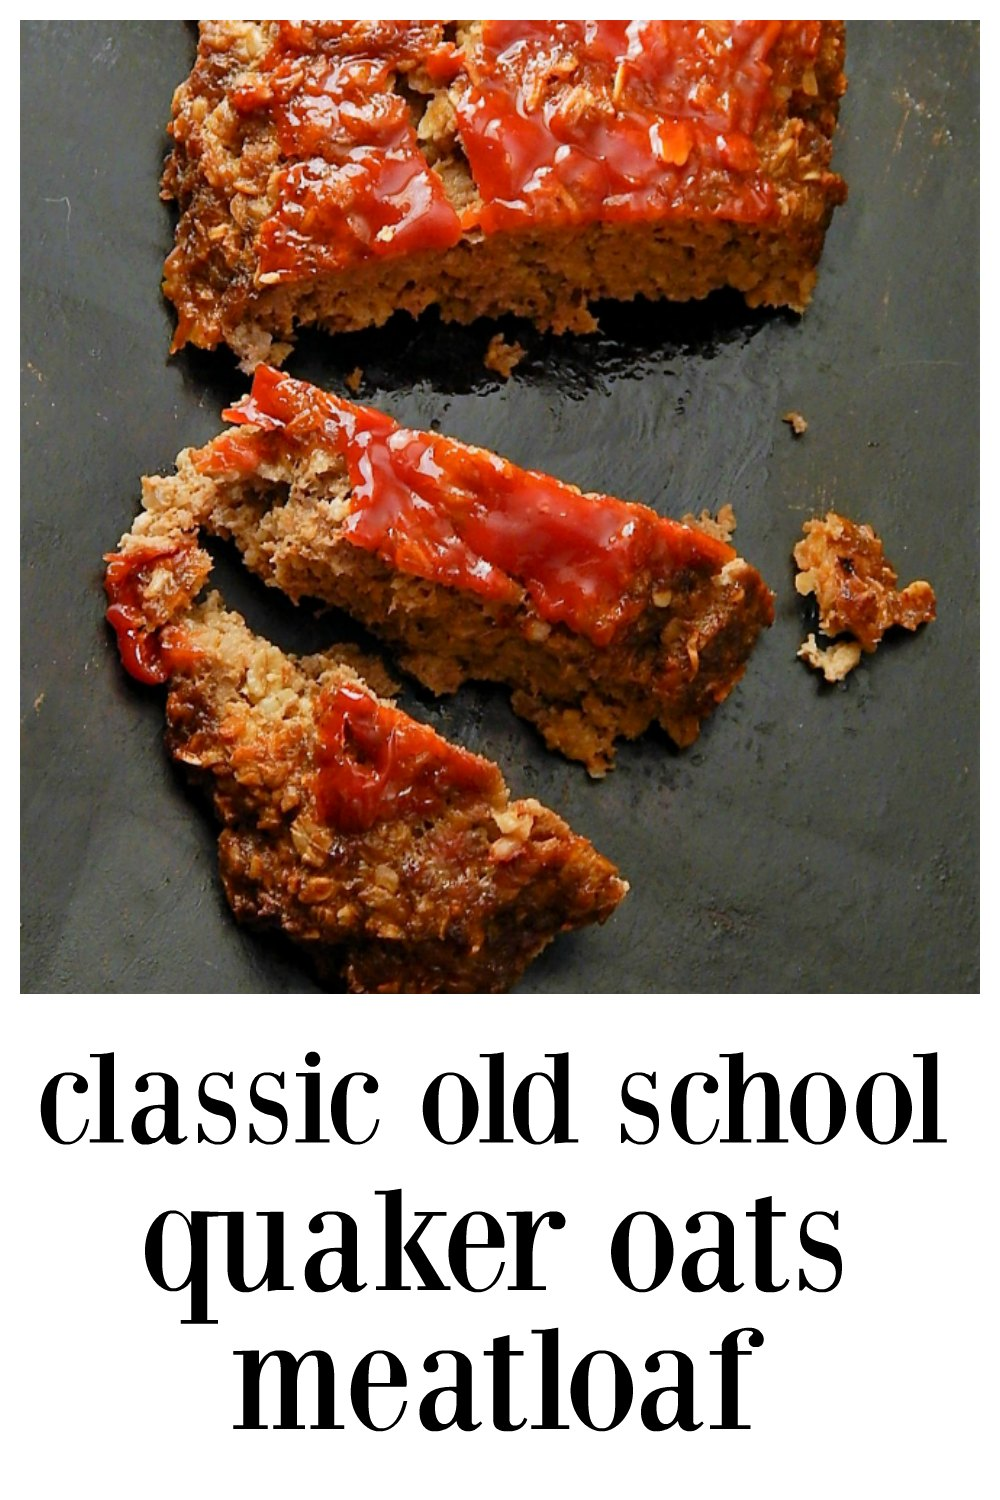 Classic Quaker Oats Meatloaf - This is the recipe, the one you grew up on that's been around since the '60s...eating this meatloaf is like coming home and it's so easy to make a child make it! And I did, lol!! Make Free form for extra crunchy outside or in a loaf pan. #QuakerOatsMeatloaf #Meatloaf